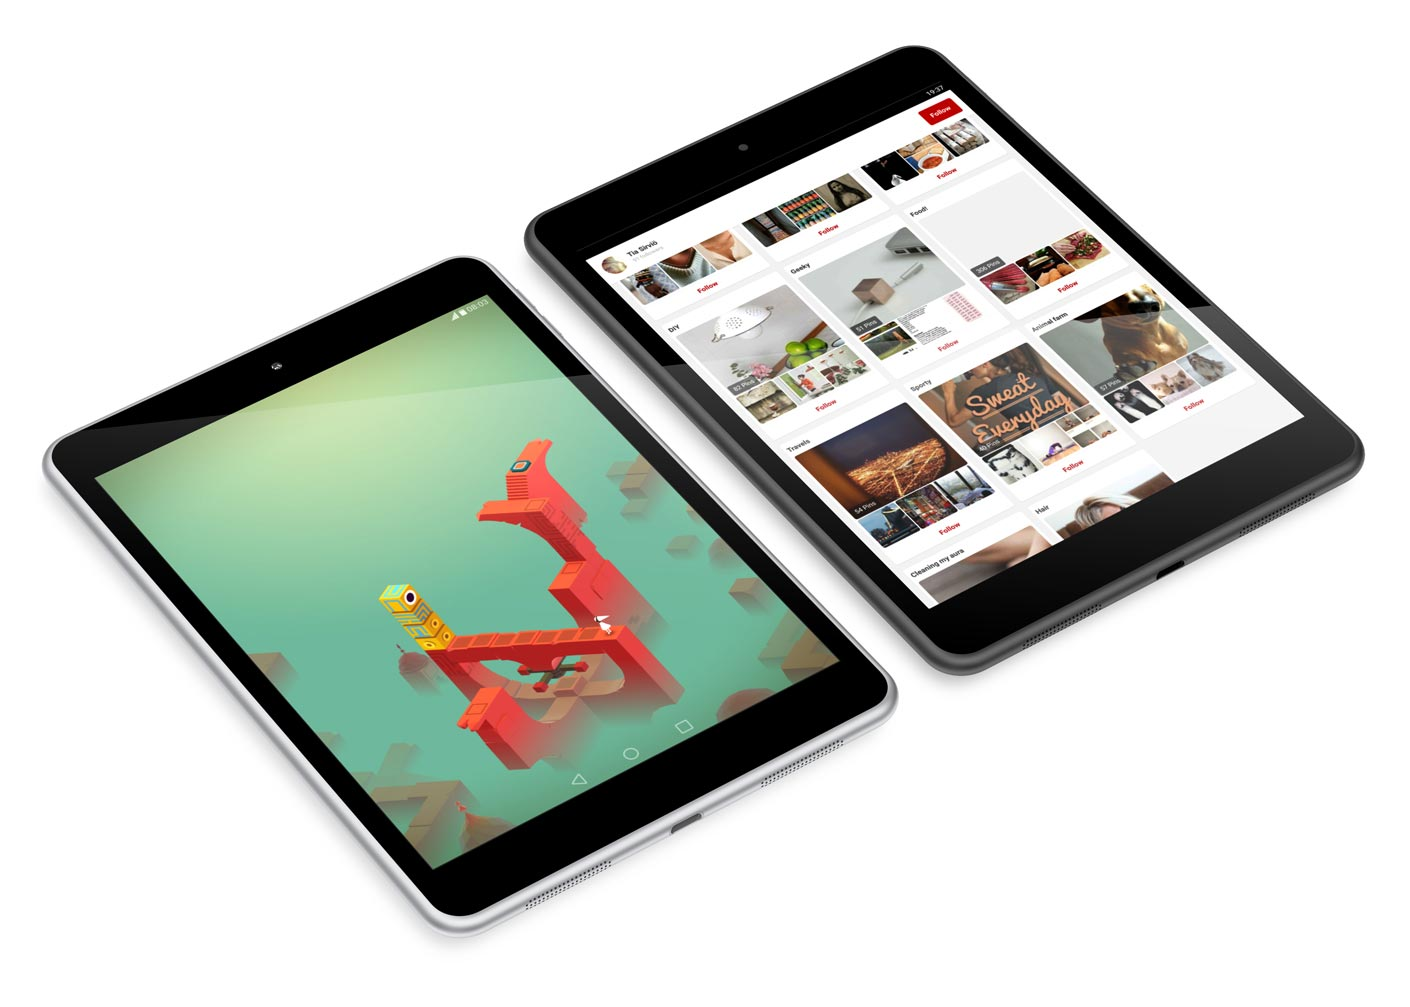 Nokia N1 : An iPad Clone That came out of the blue to Surprise us all